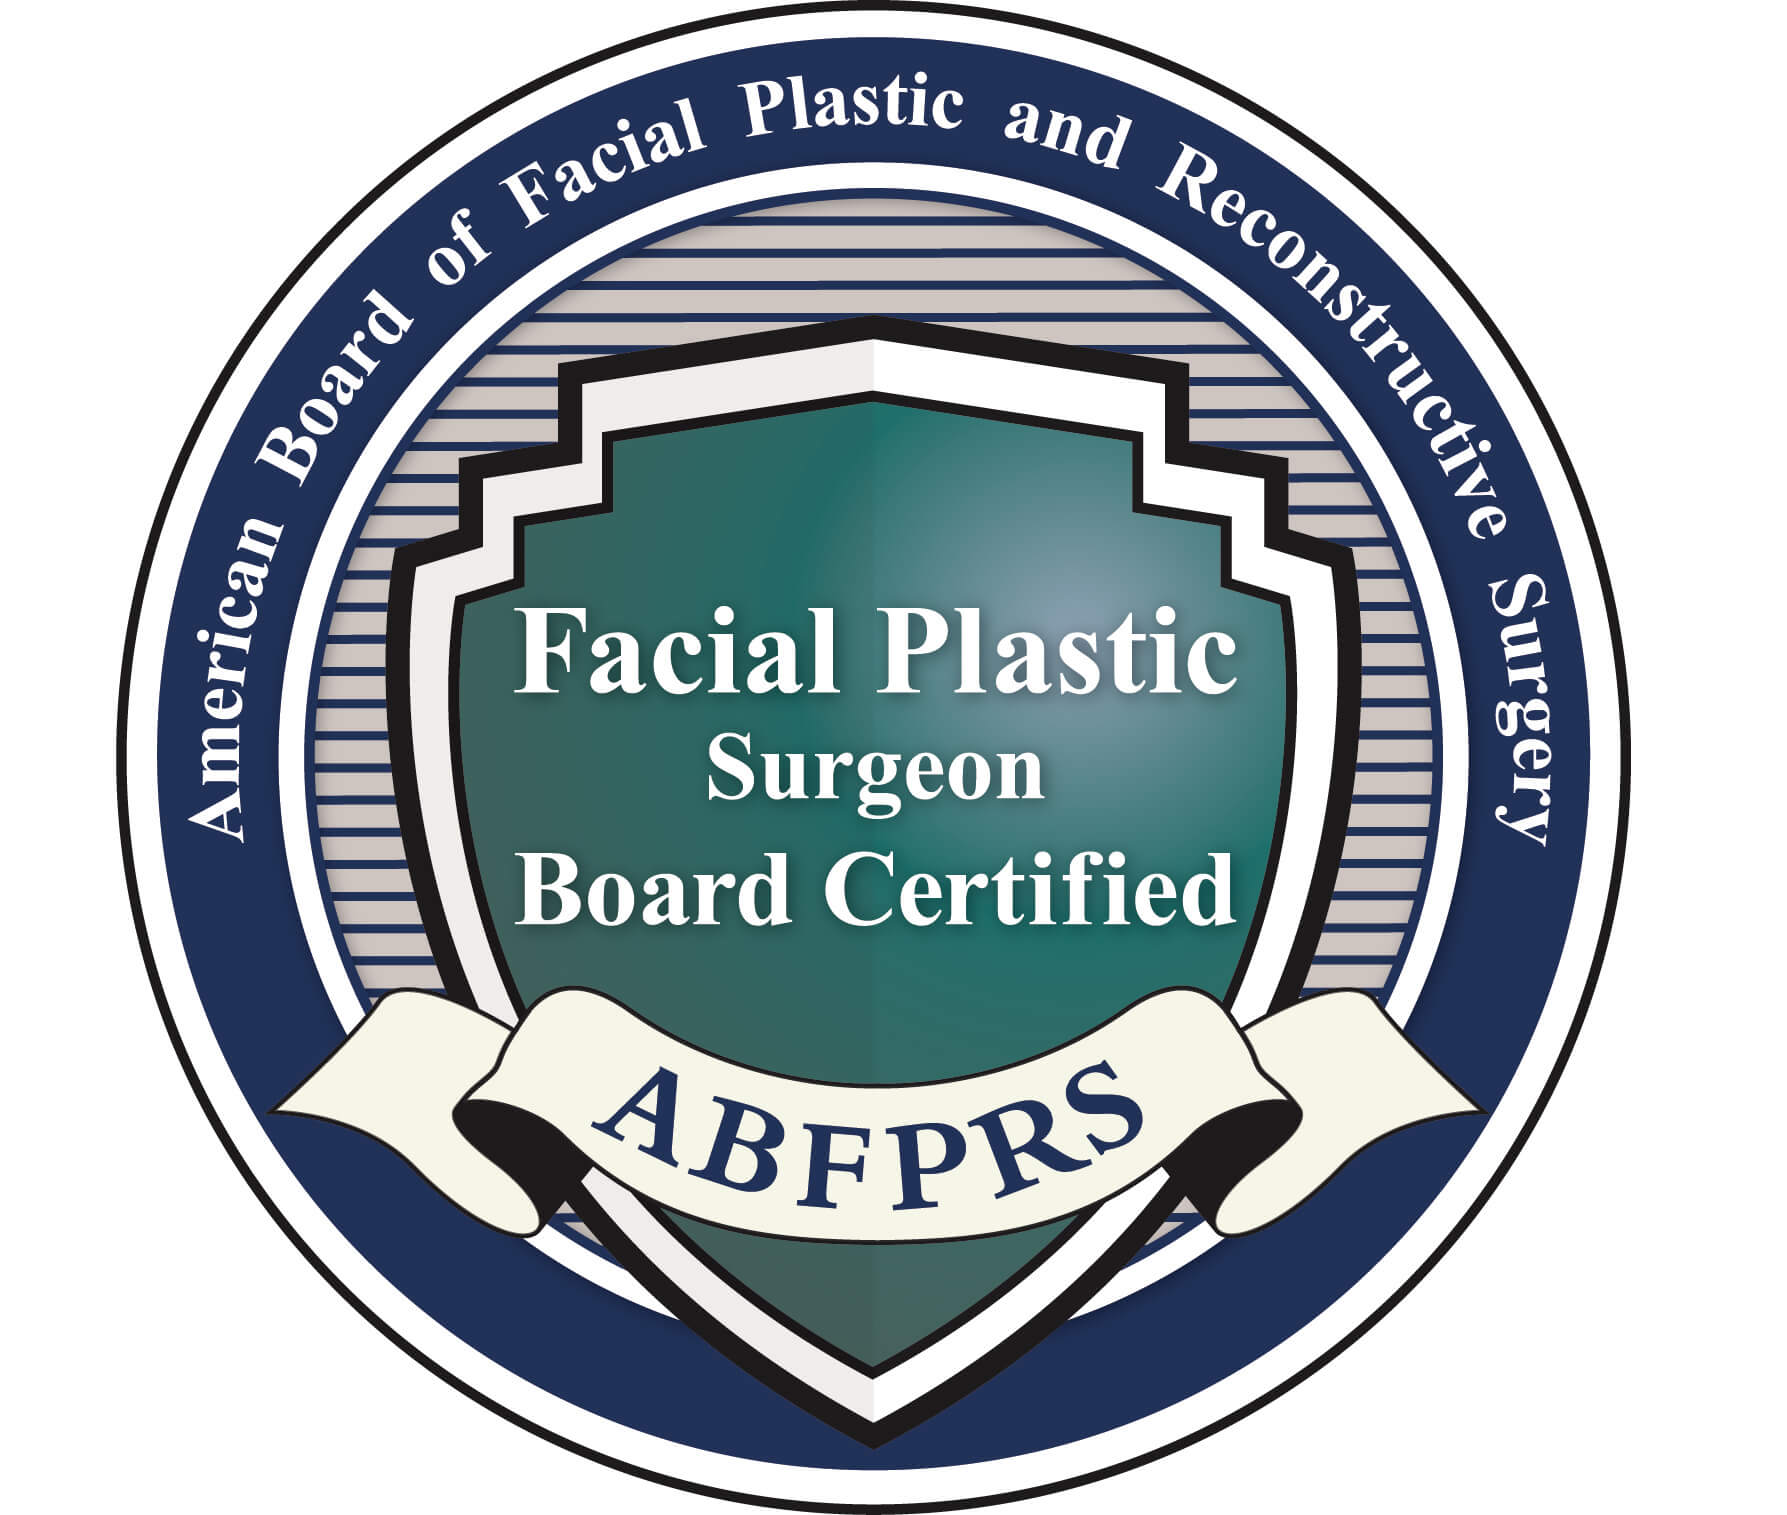 logo for the American Board of Facial Plastic and Reconstructive Surgery.